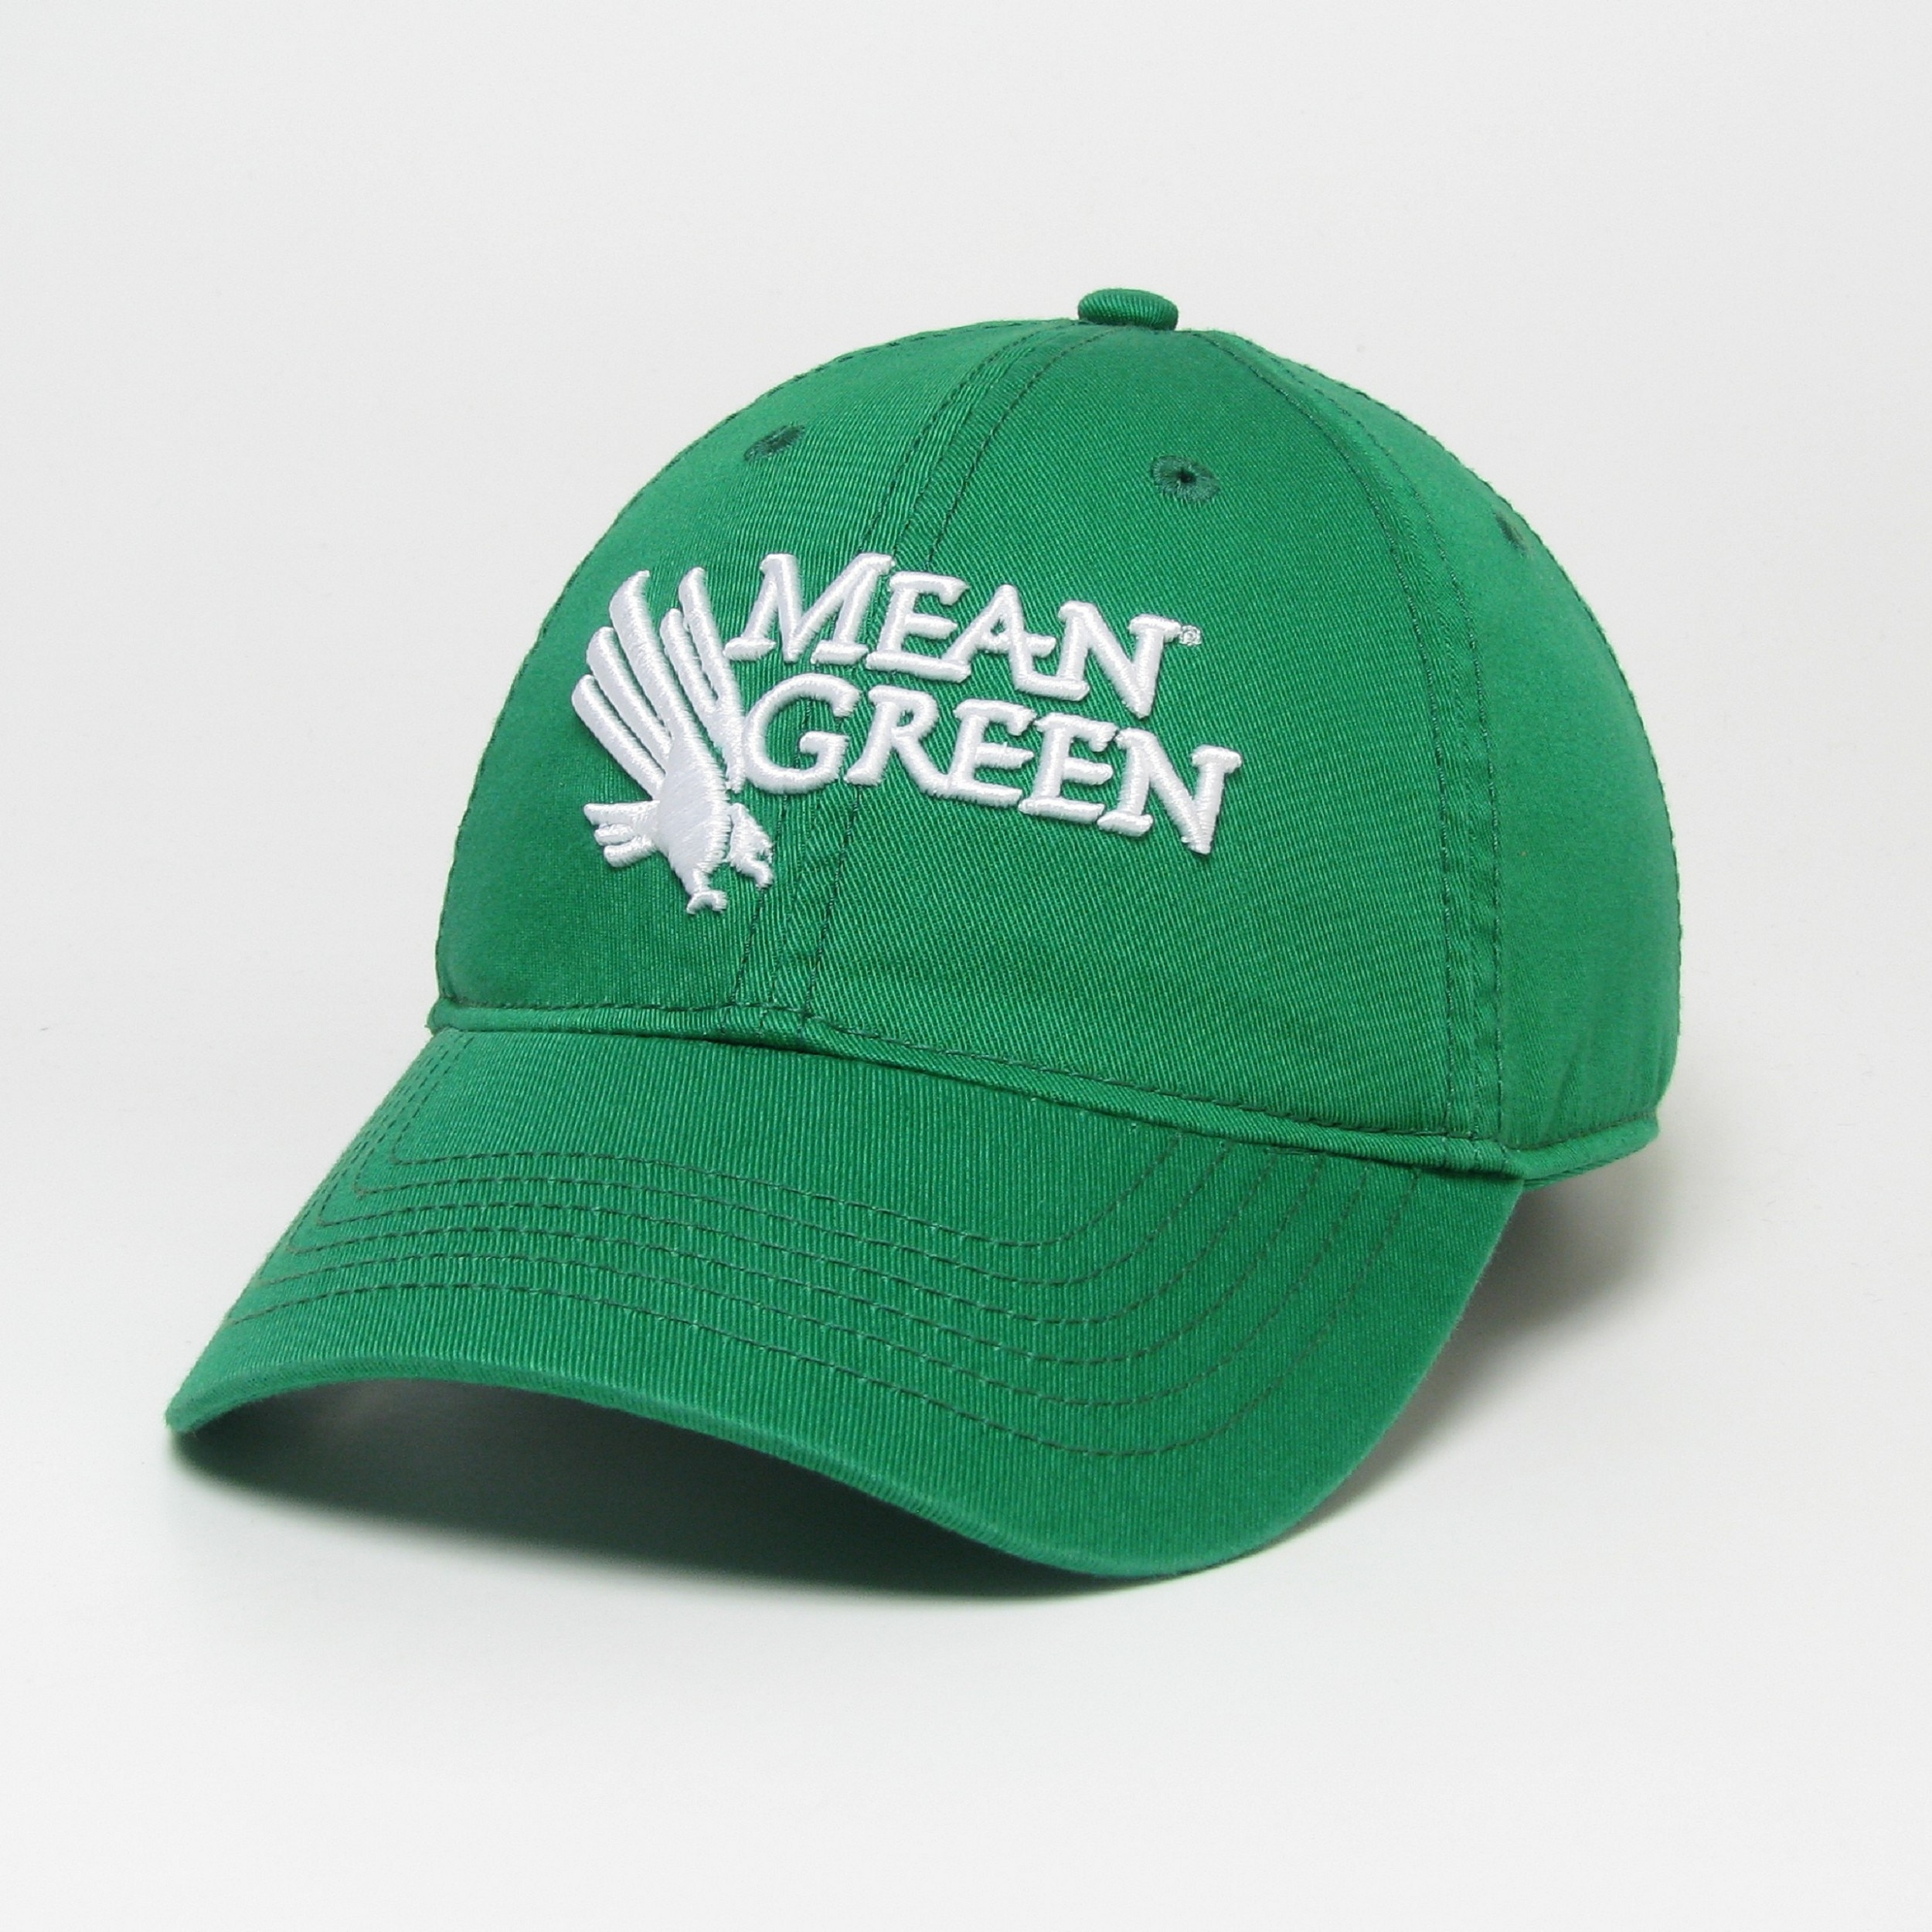 University of North Texas Legacy Adjustable Hat